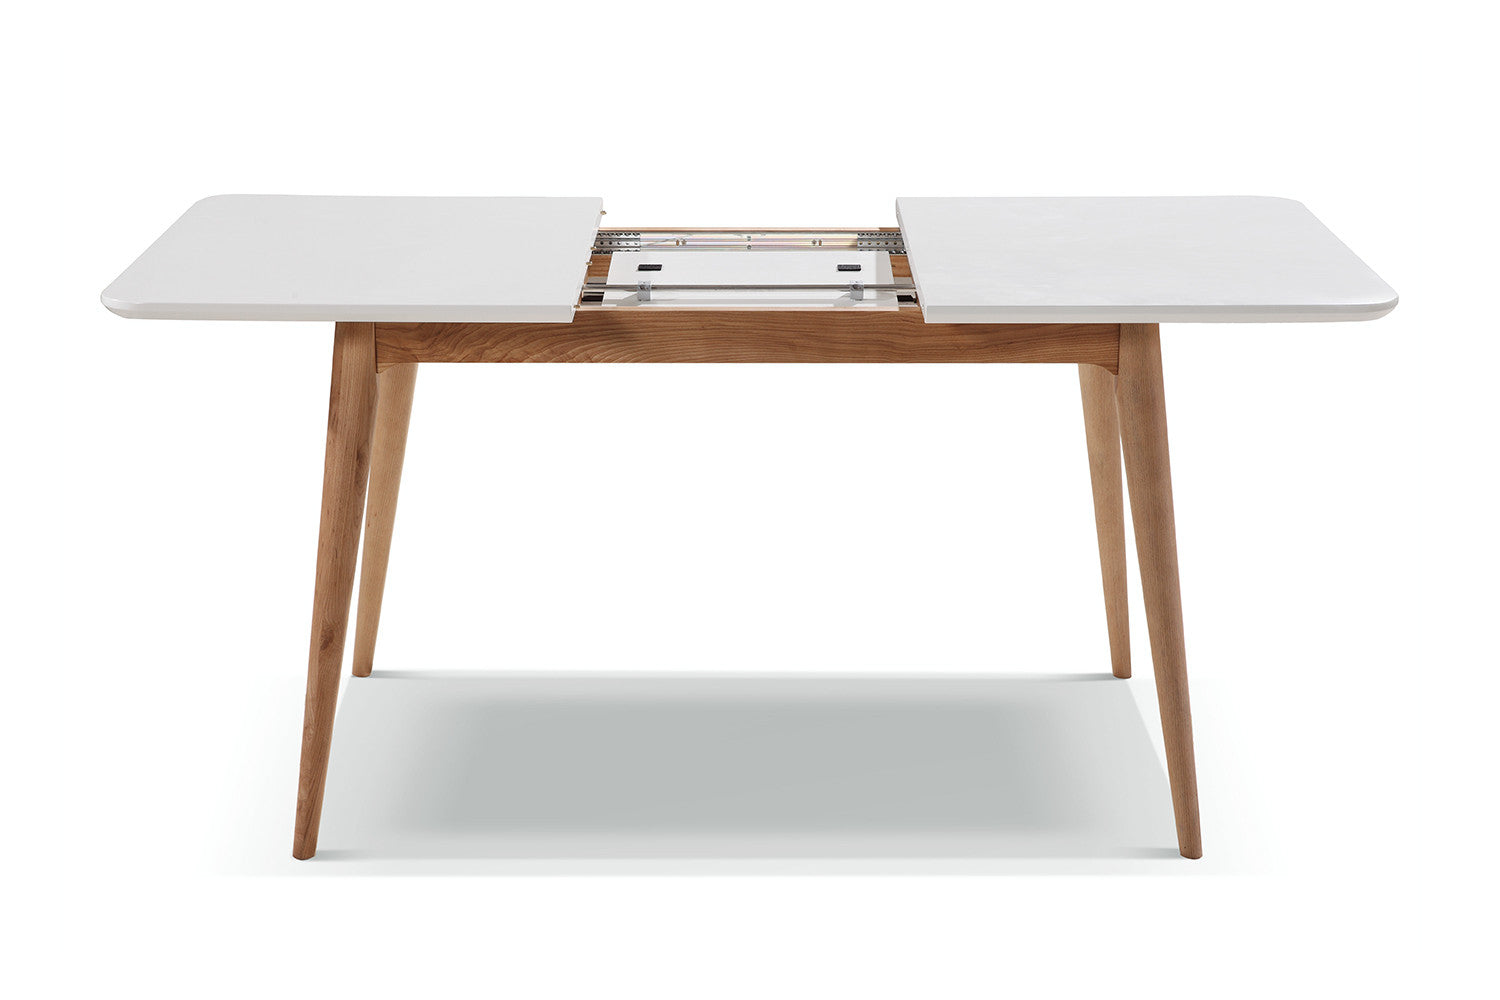 Table de cuisine extensible vintage breggia dewarens for Table de salle a manger nordique